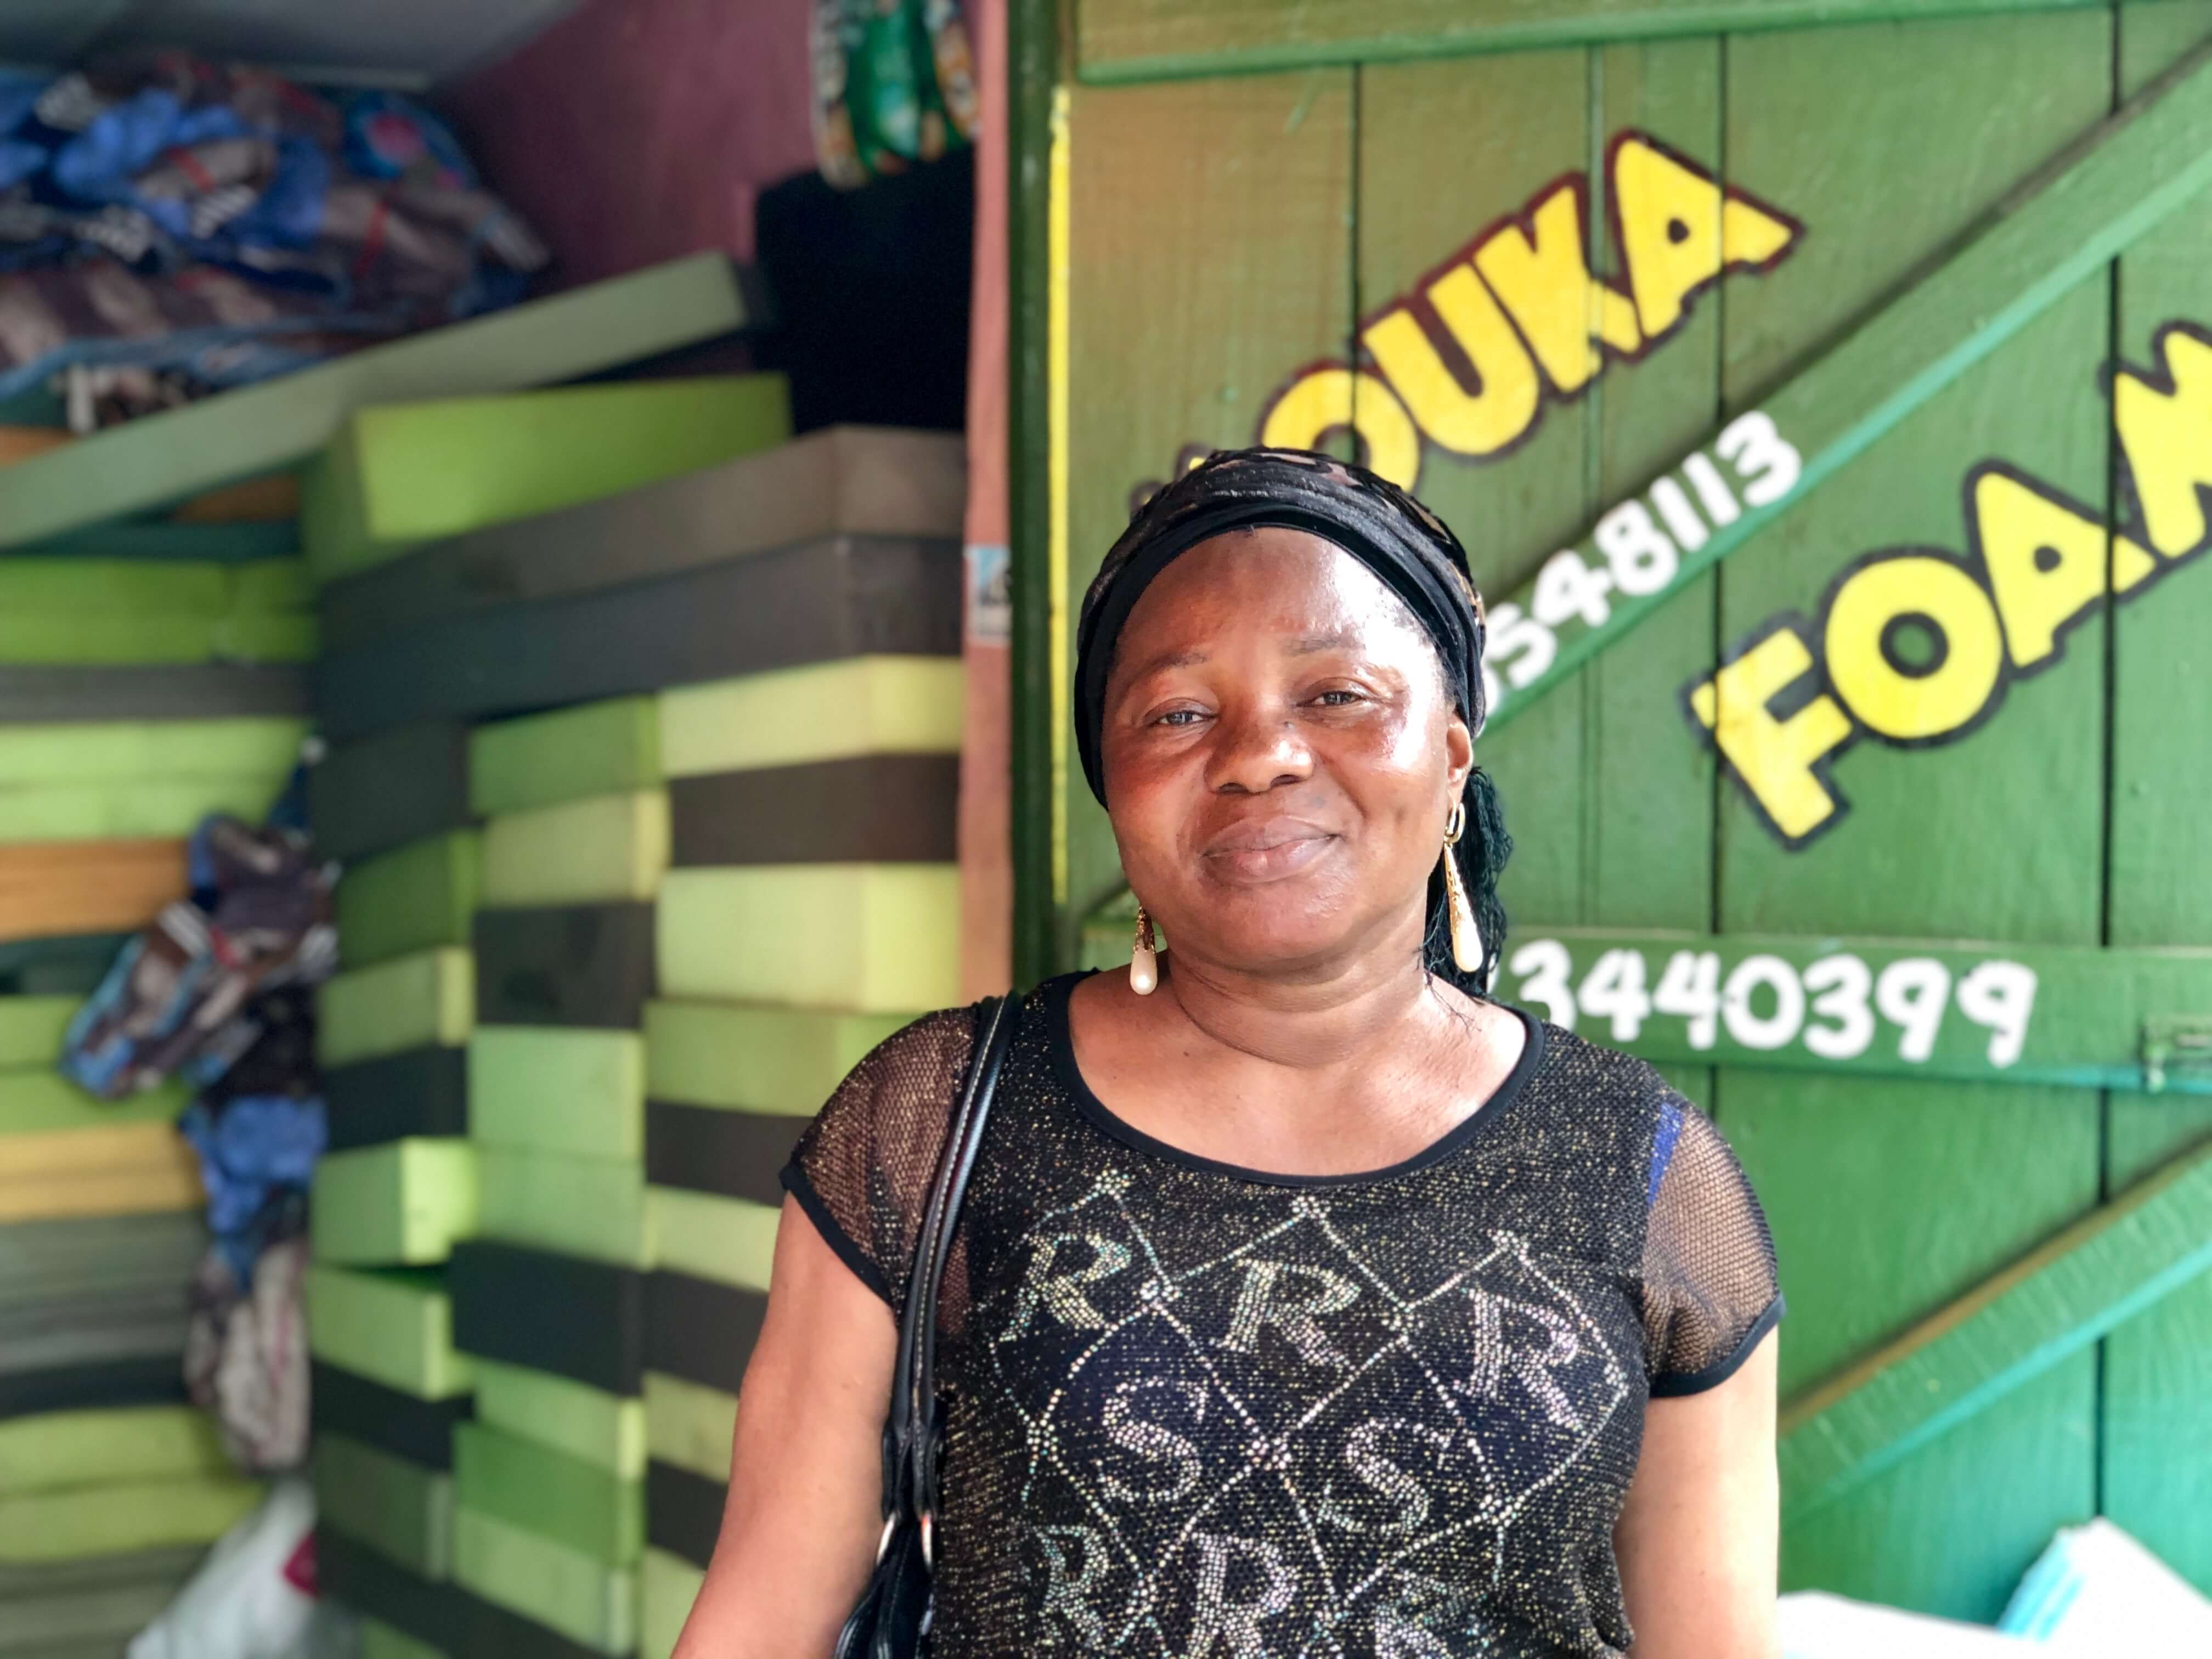 Osholabi runs her own business selling mattresses in Lagos. She initially took out a $330 loan from Accion Microfinance Bank, and her business did so well that she was able to expand her sales to the adjacent plot. She has recently taken out a $4,700 loan to expand to another market in Lagos.